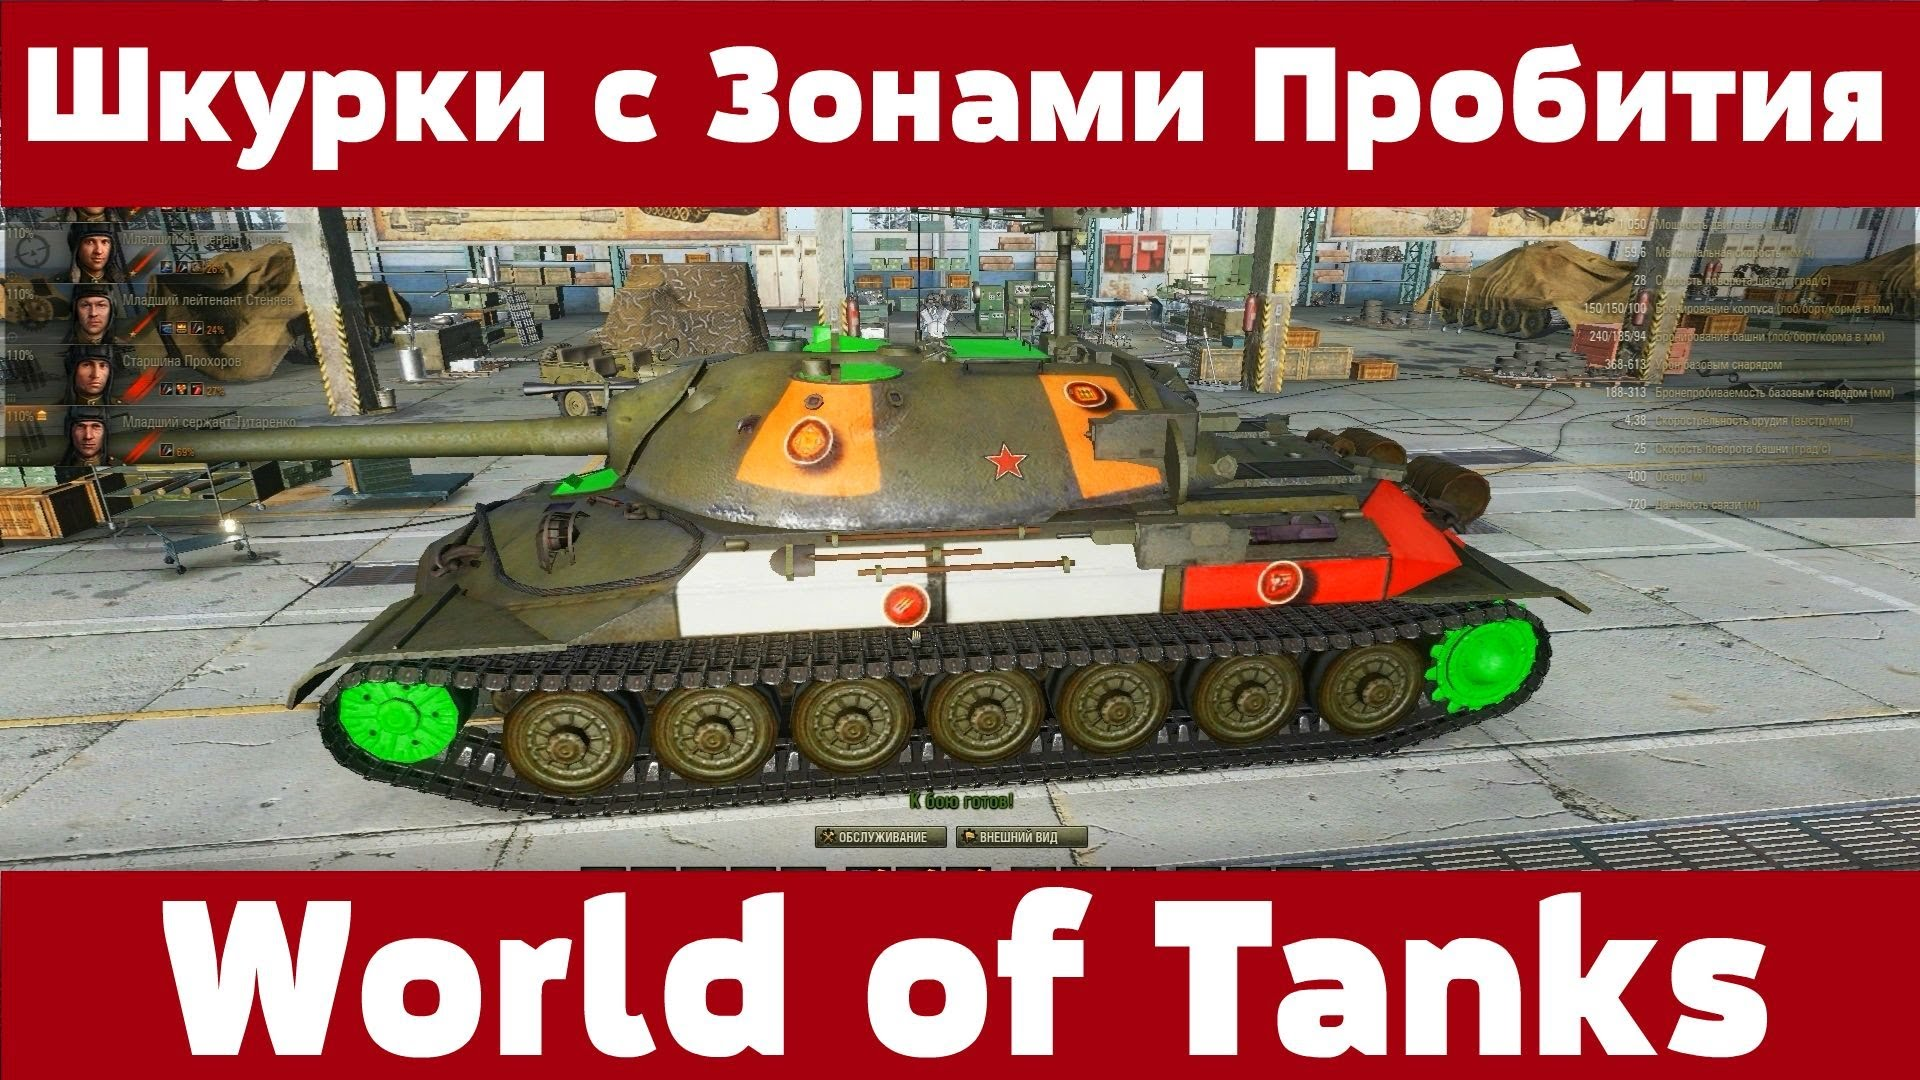 Зоны пробития tanks of world